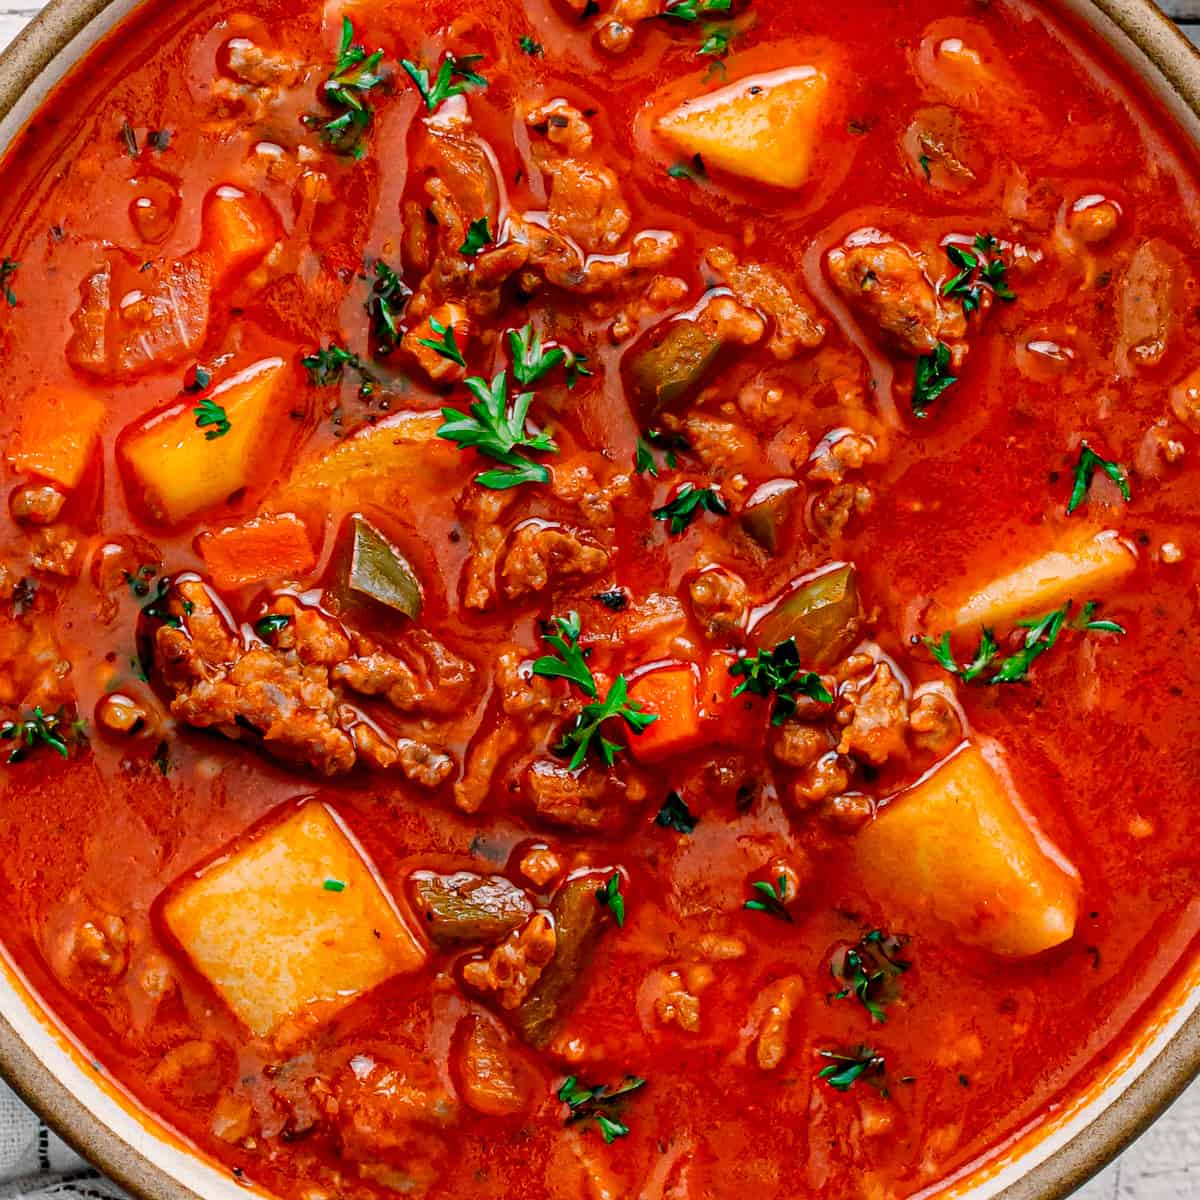 A soup with potato, Italian sausage, vegetables, and tomato broth.